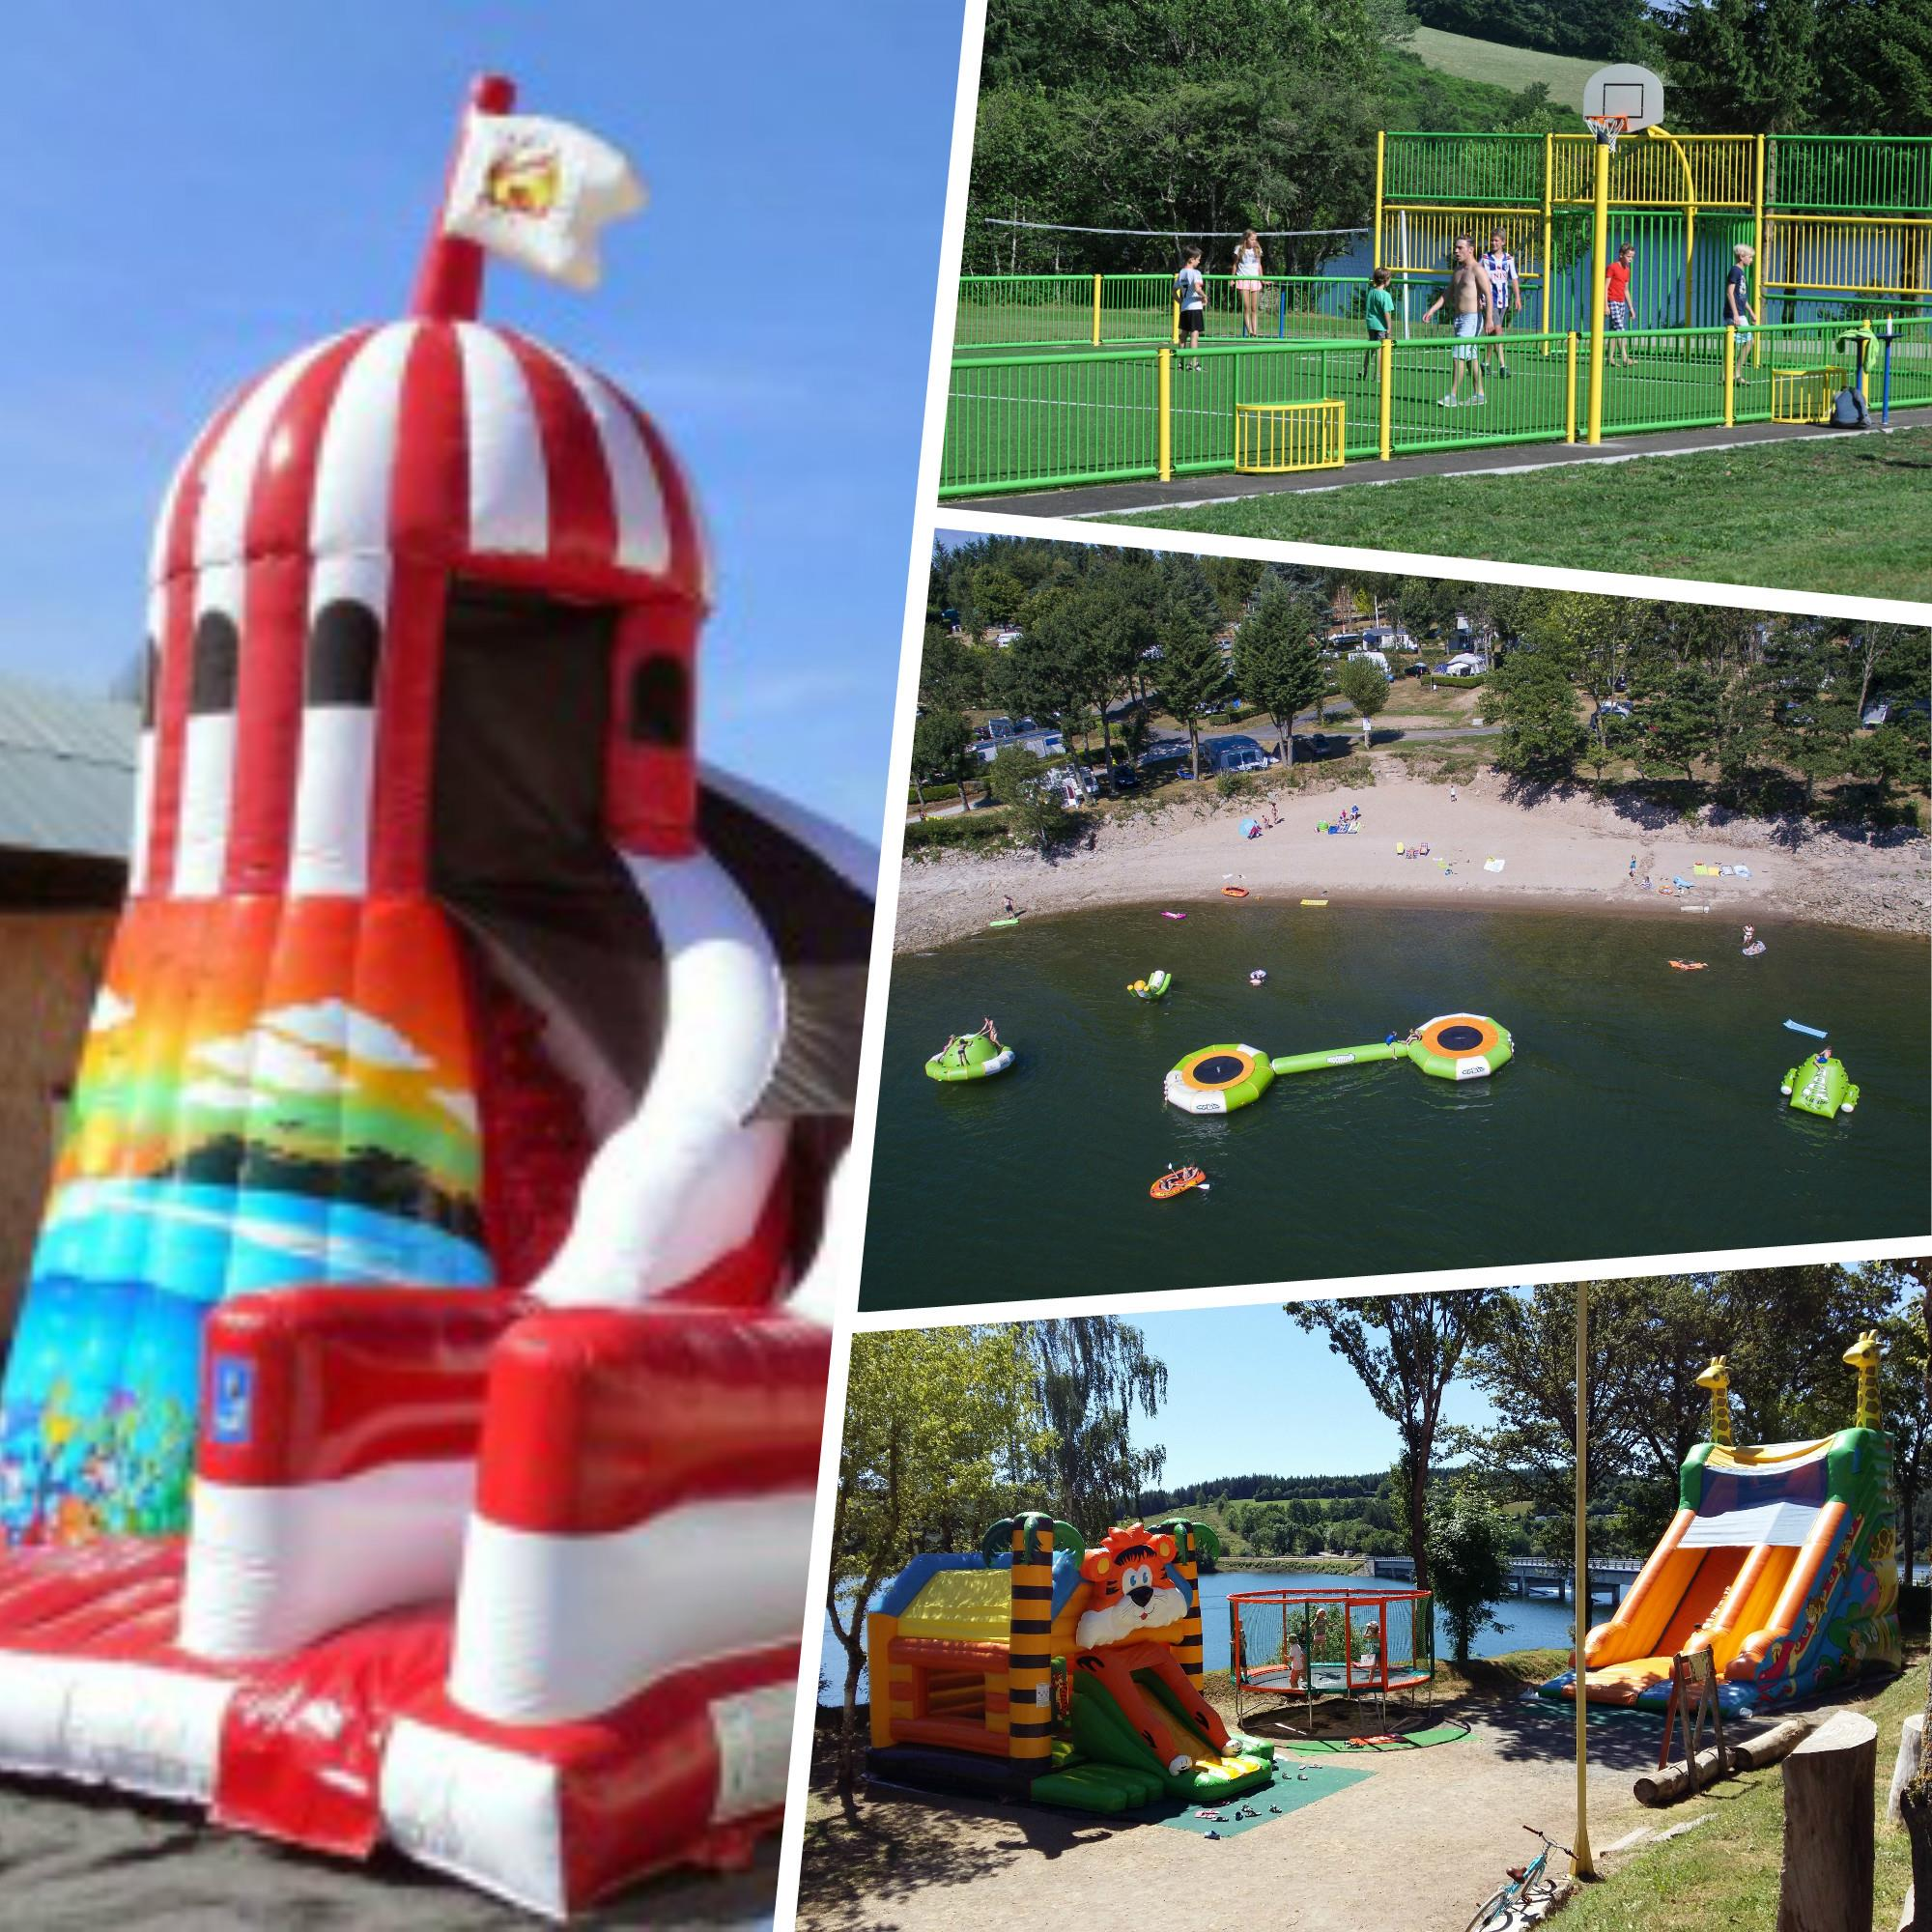 Entertainment organised Camping SOLEIL LEVANT - CANET DE SALARS